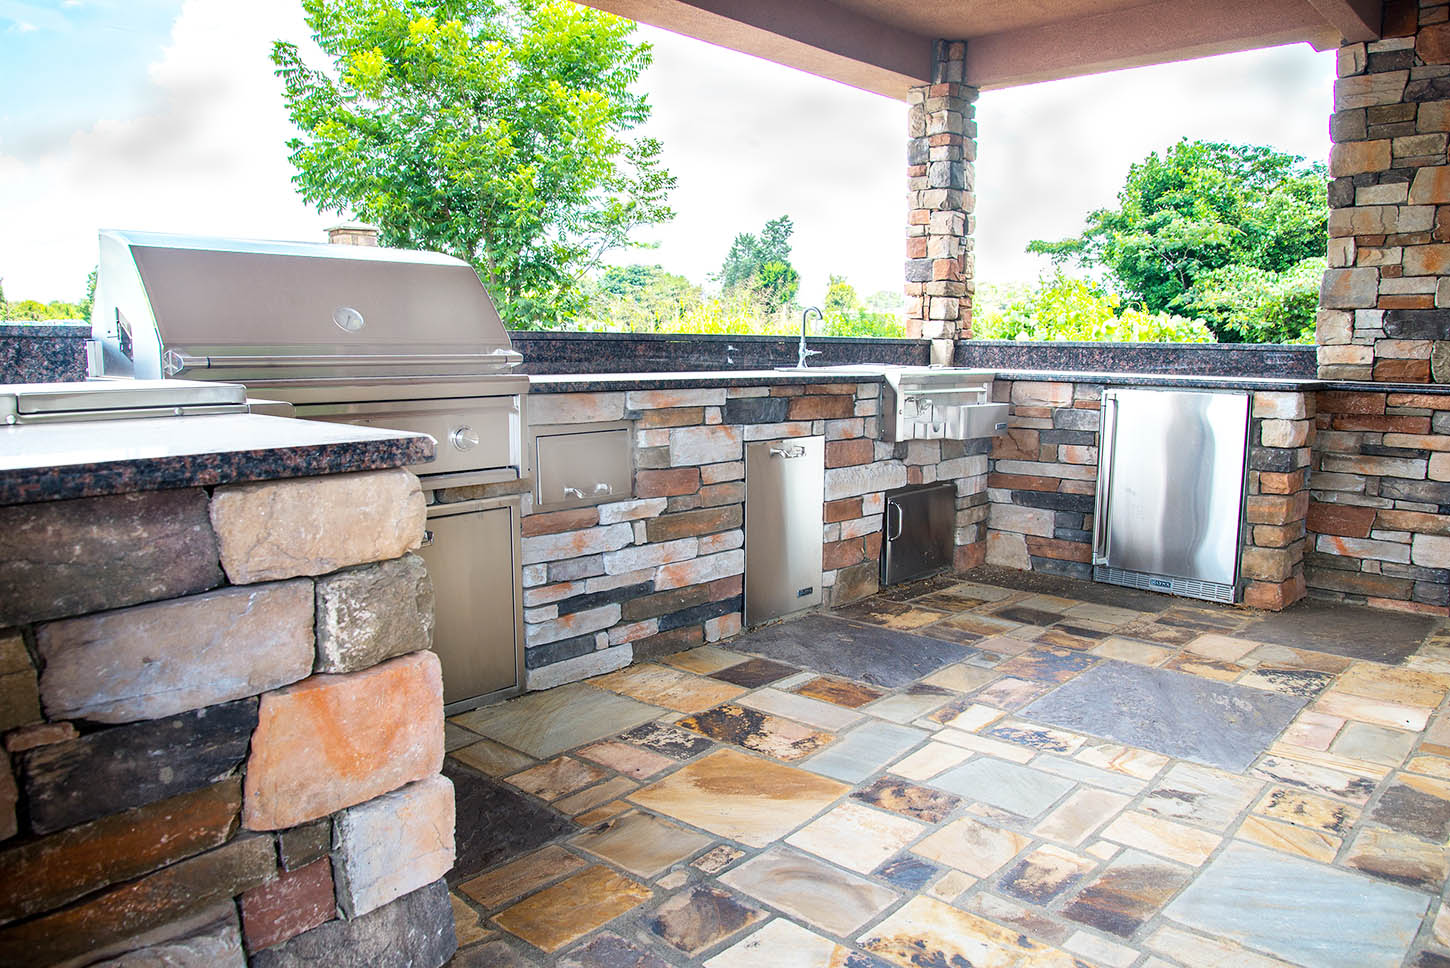 Covered outdoor kitchen with the amenities of an indoor kitchen